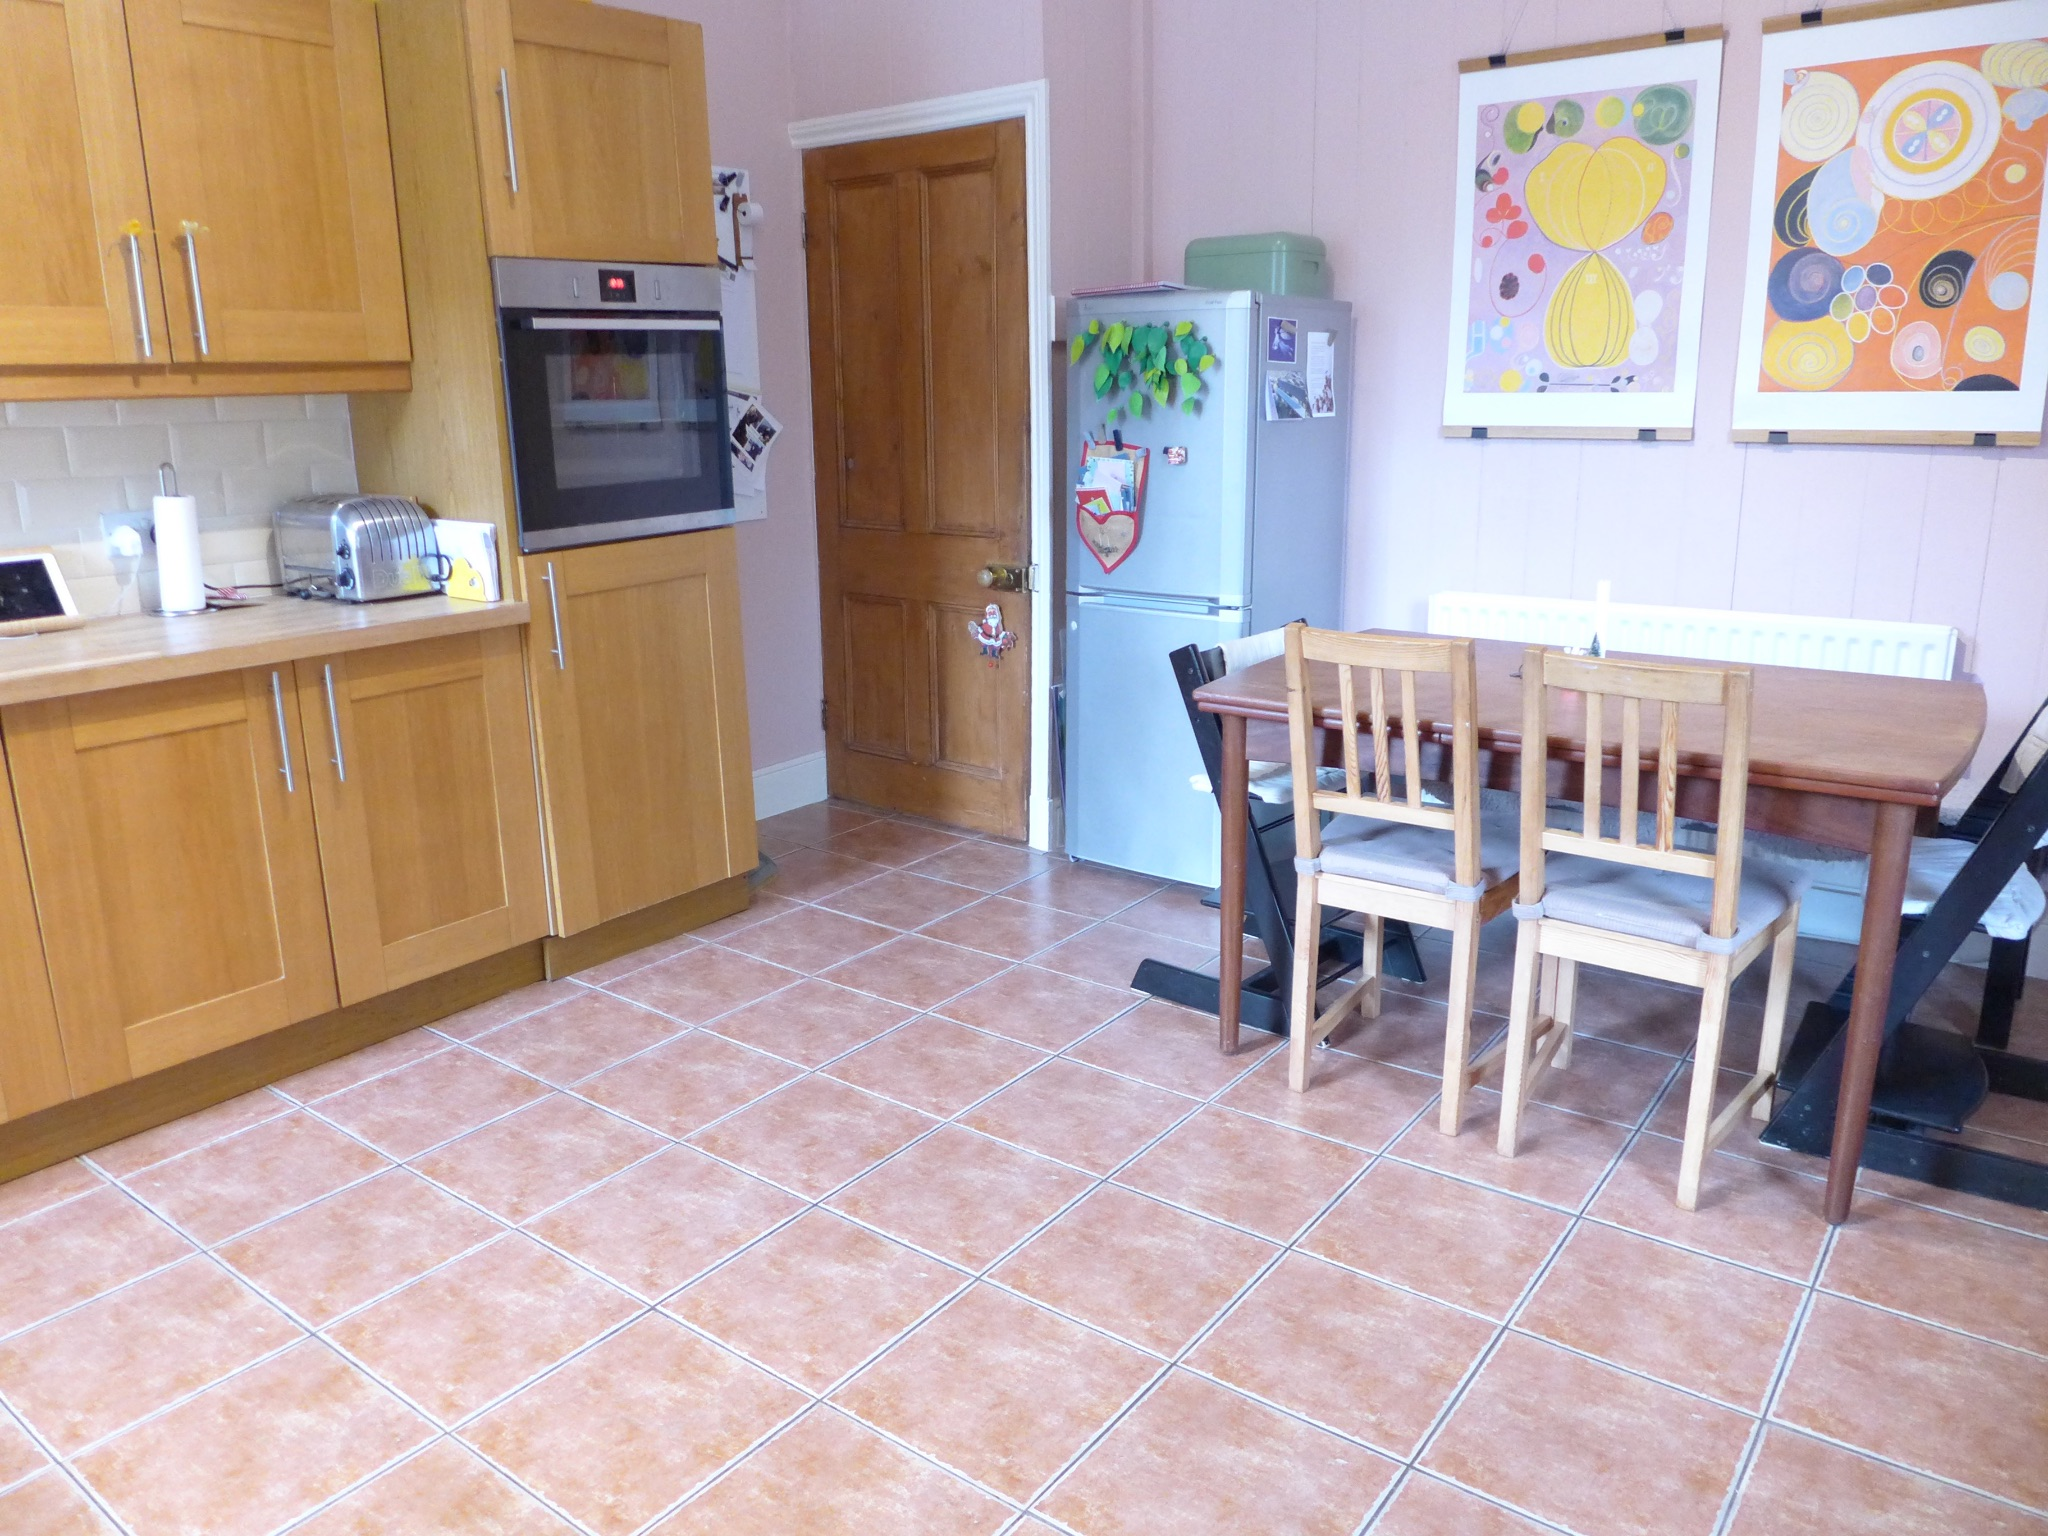 4 bedroom end terraced house For Sale in Calderdale - Photograph 10.